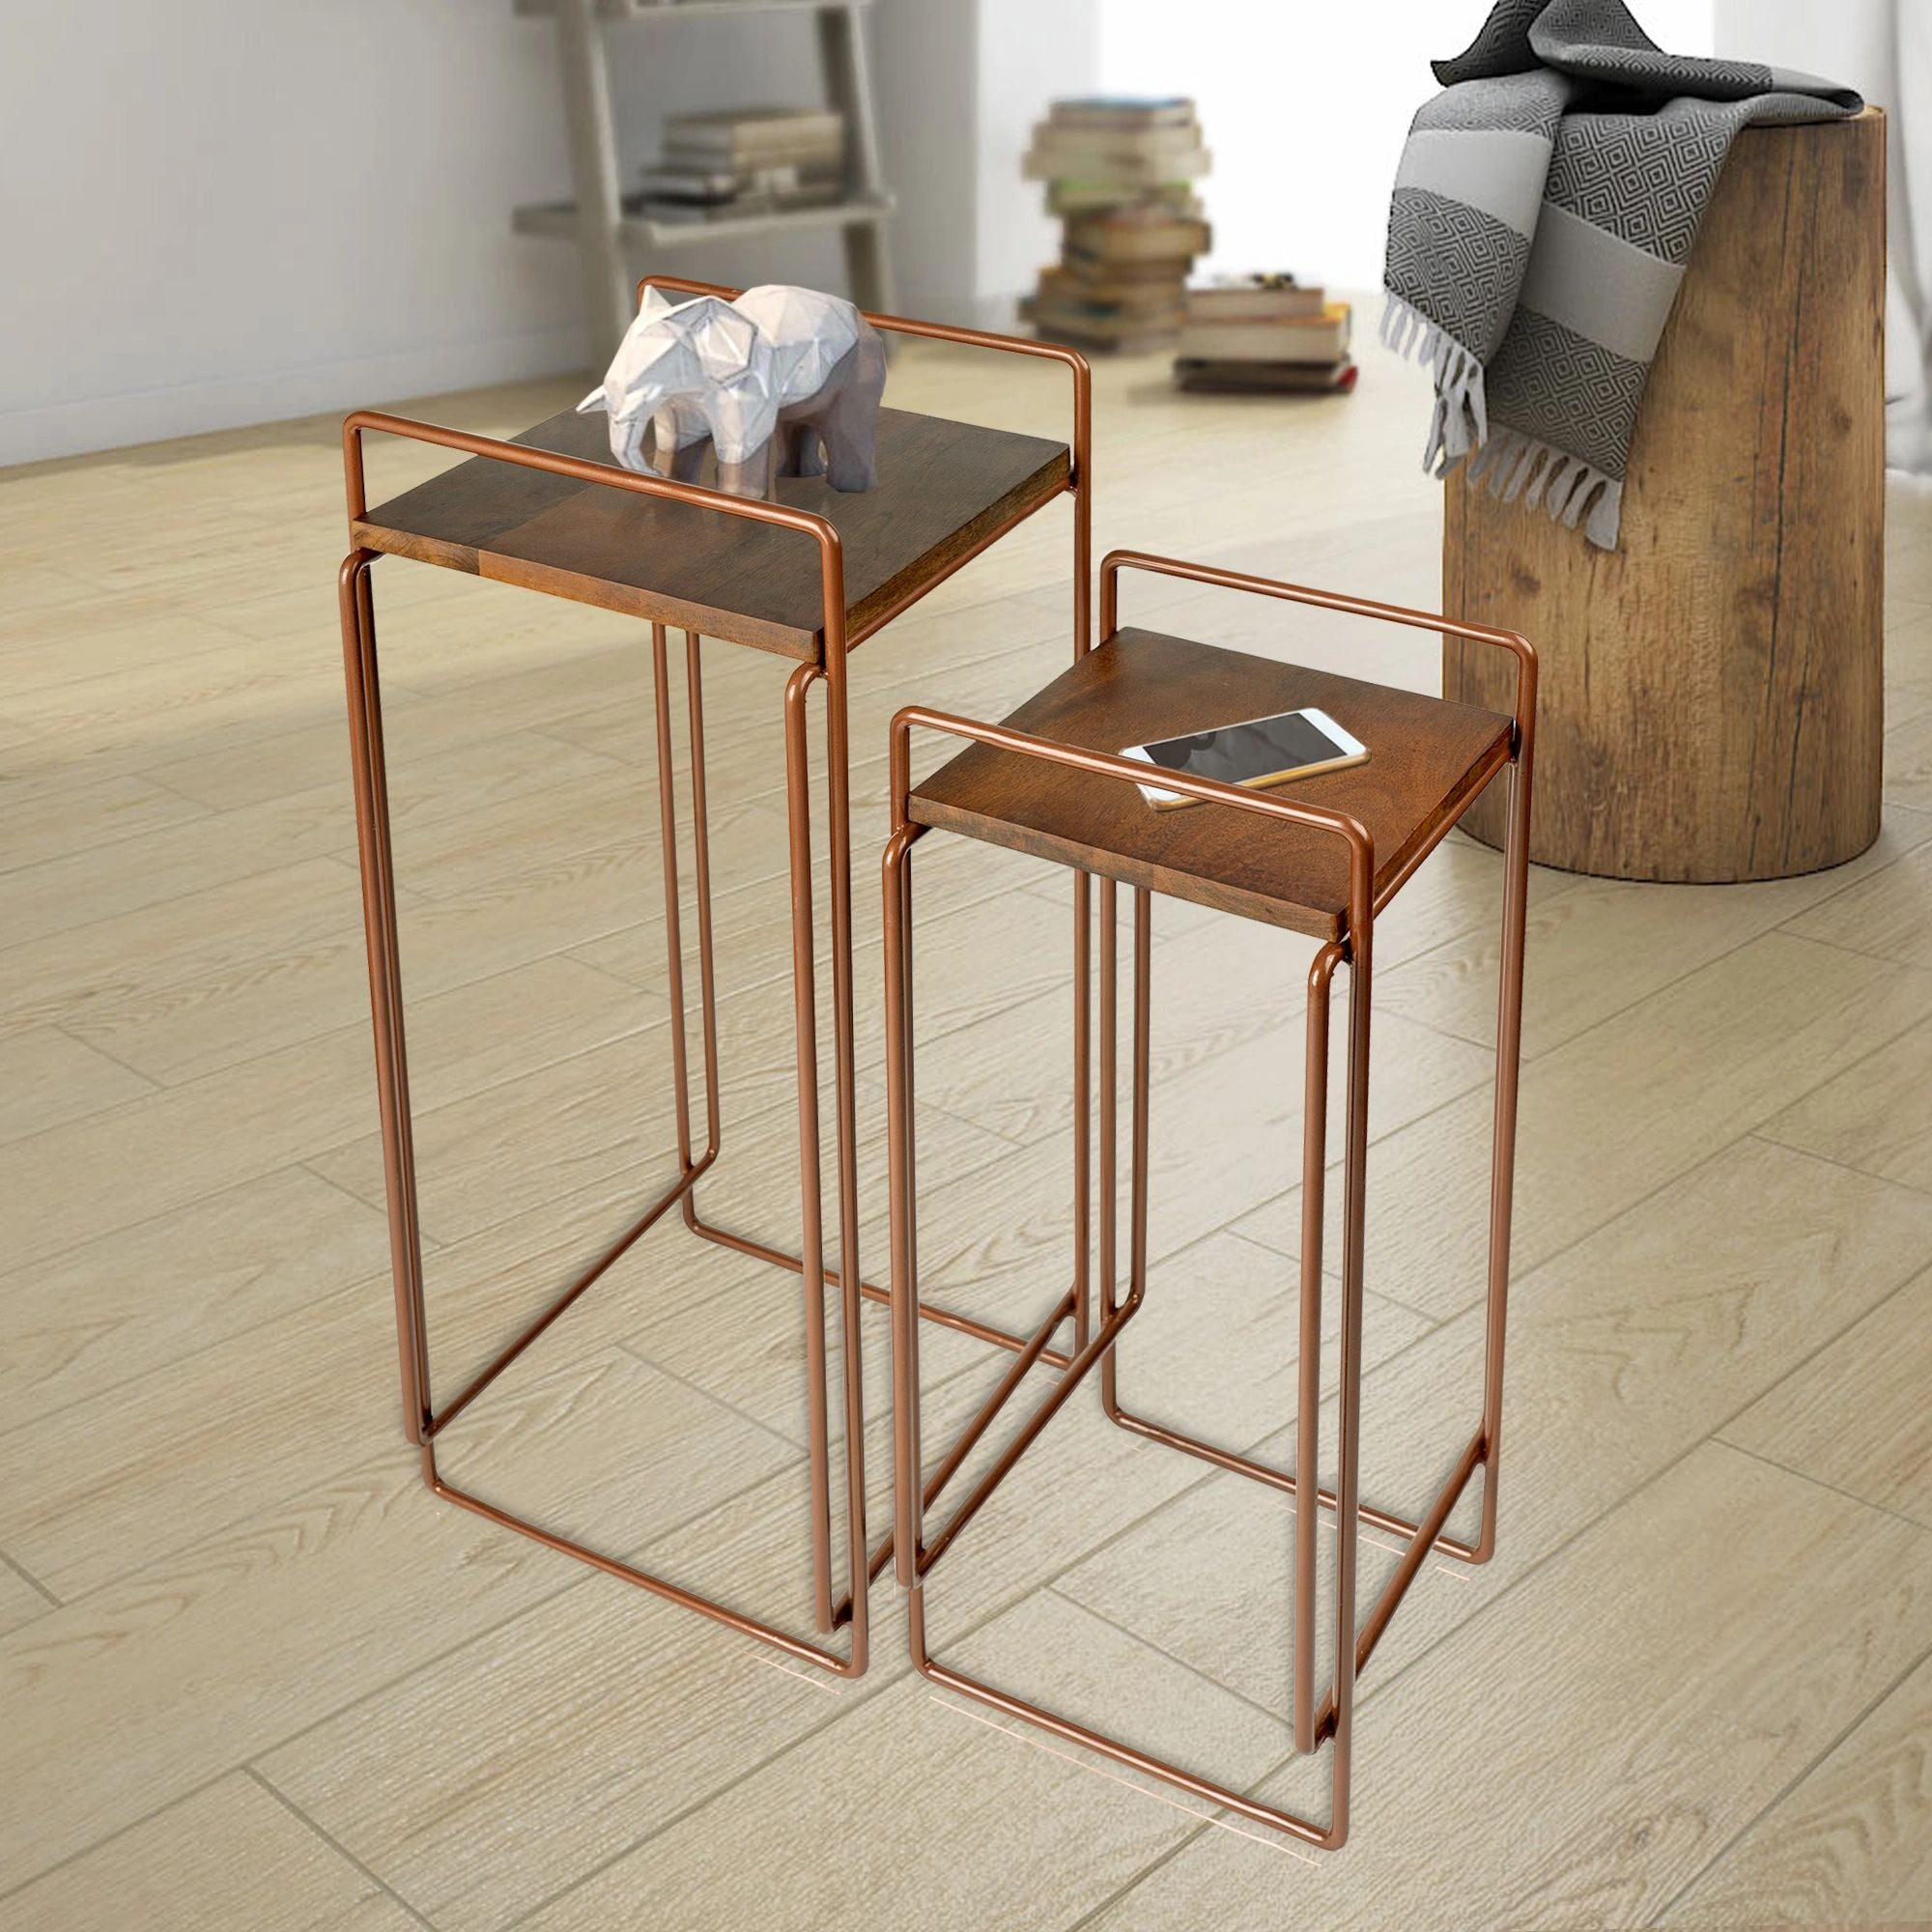 SU-186- Side Table- Copper p/coat w/ Walnut wood - Nusteel